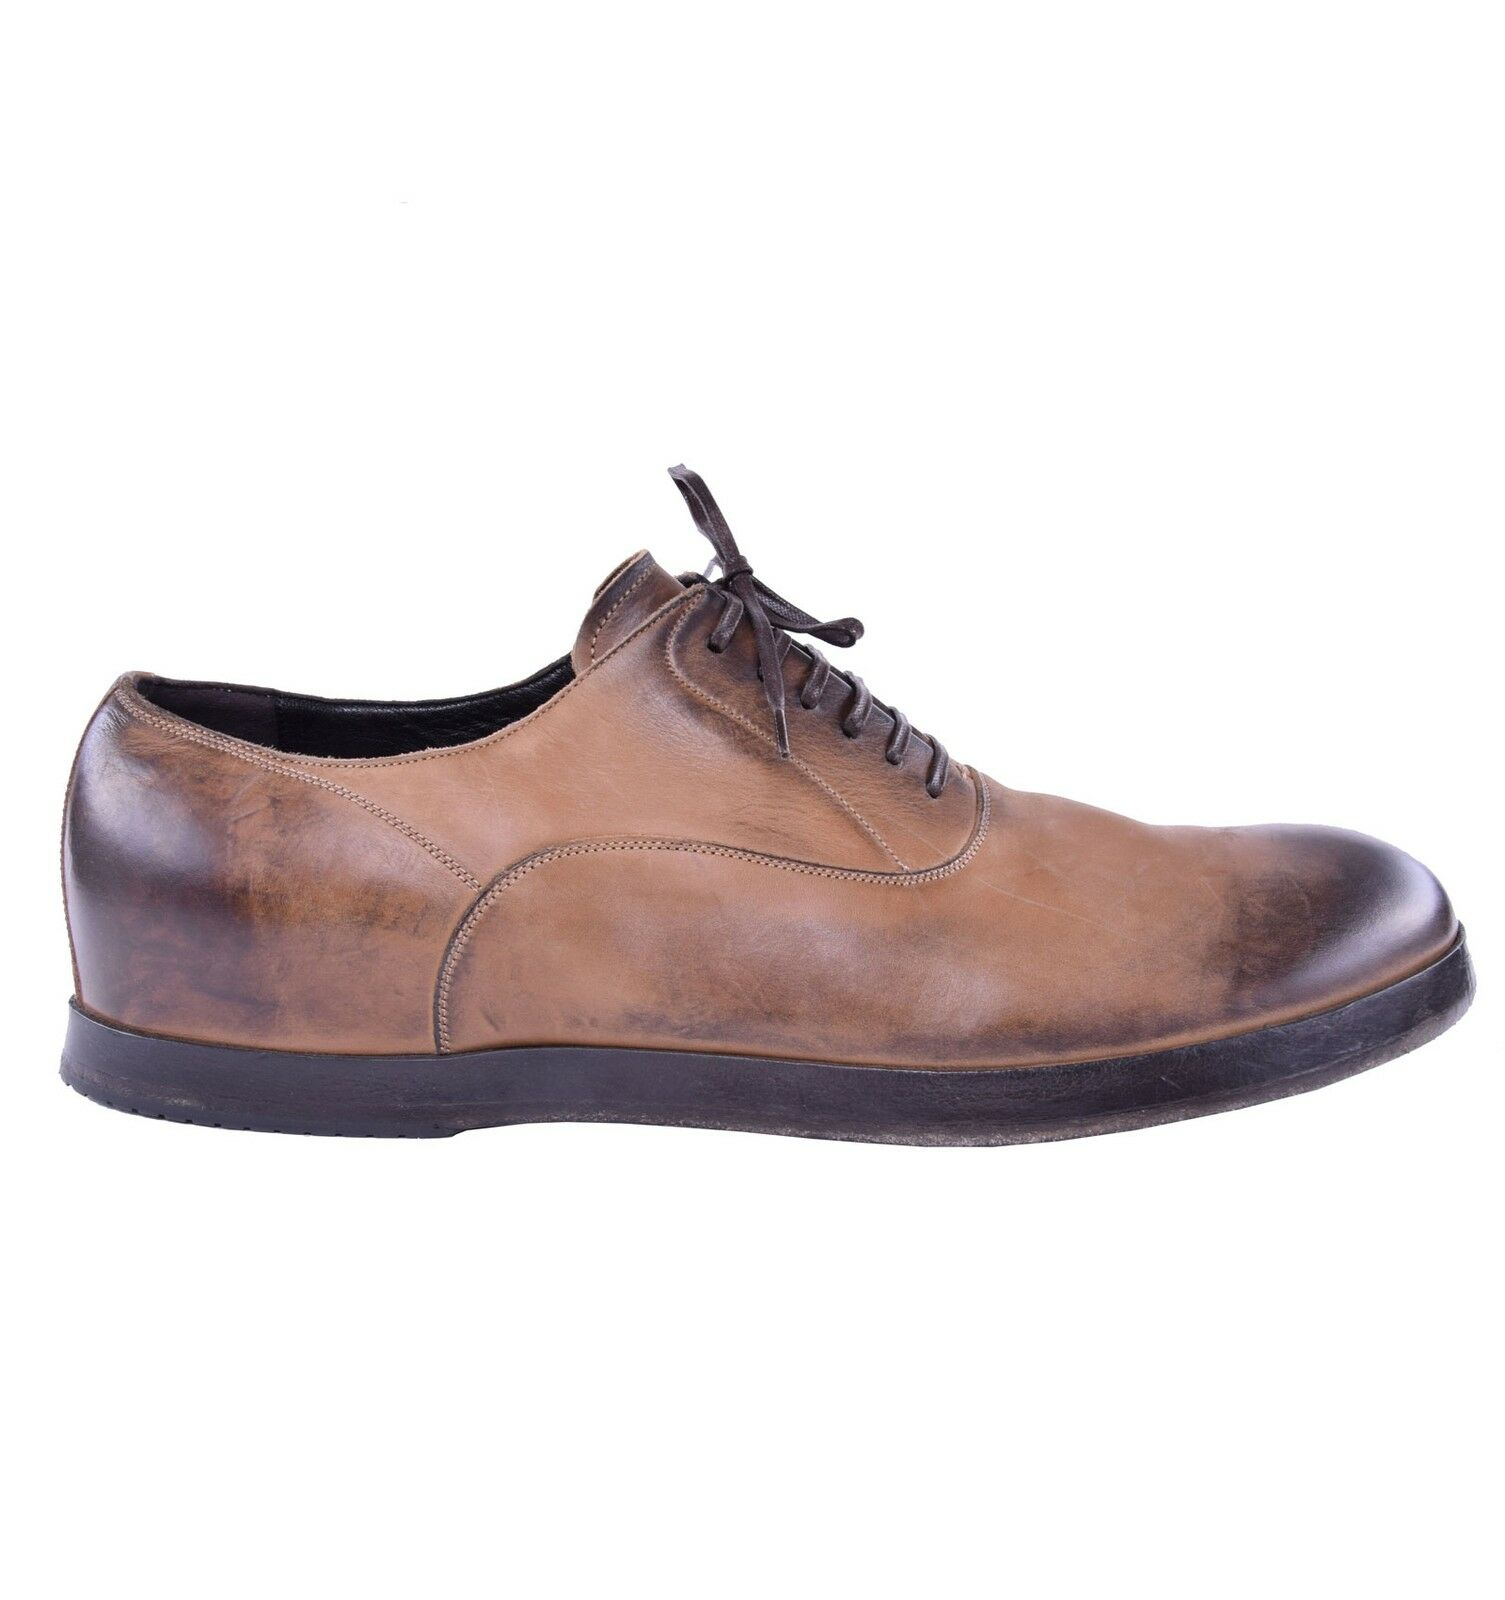 DOLCE & GABBANA RUNWAY Solid Calf Leather Shoes Light Brown 03895